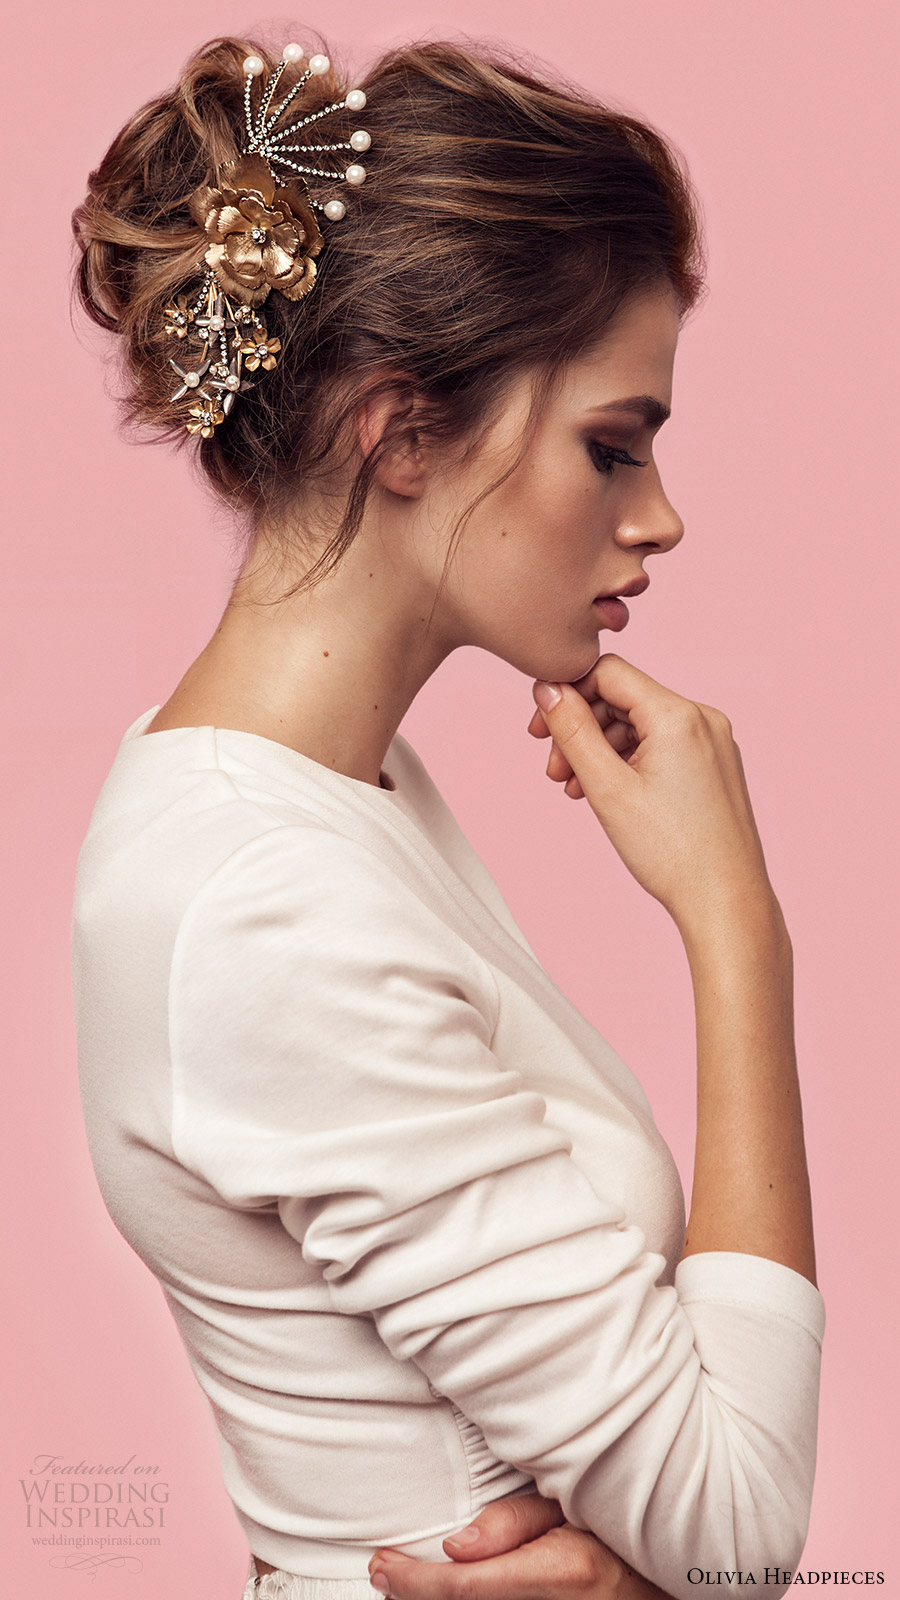 olivia headpieces 2017 bridal accessories born to be wild hair pin comb set